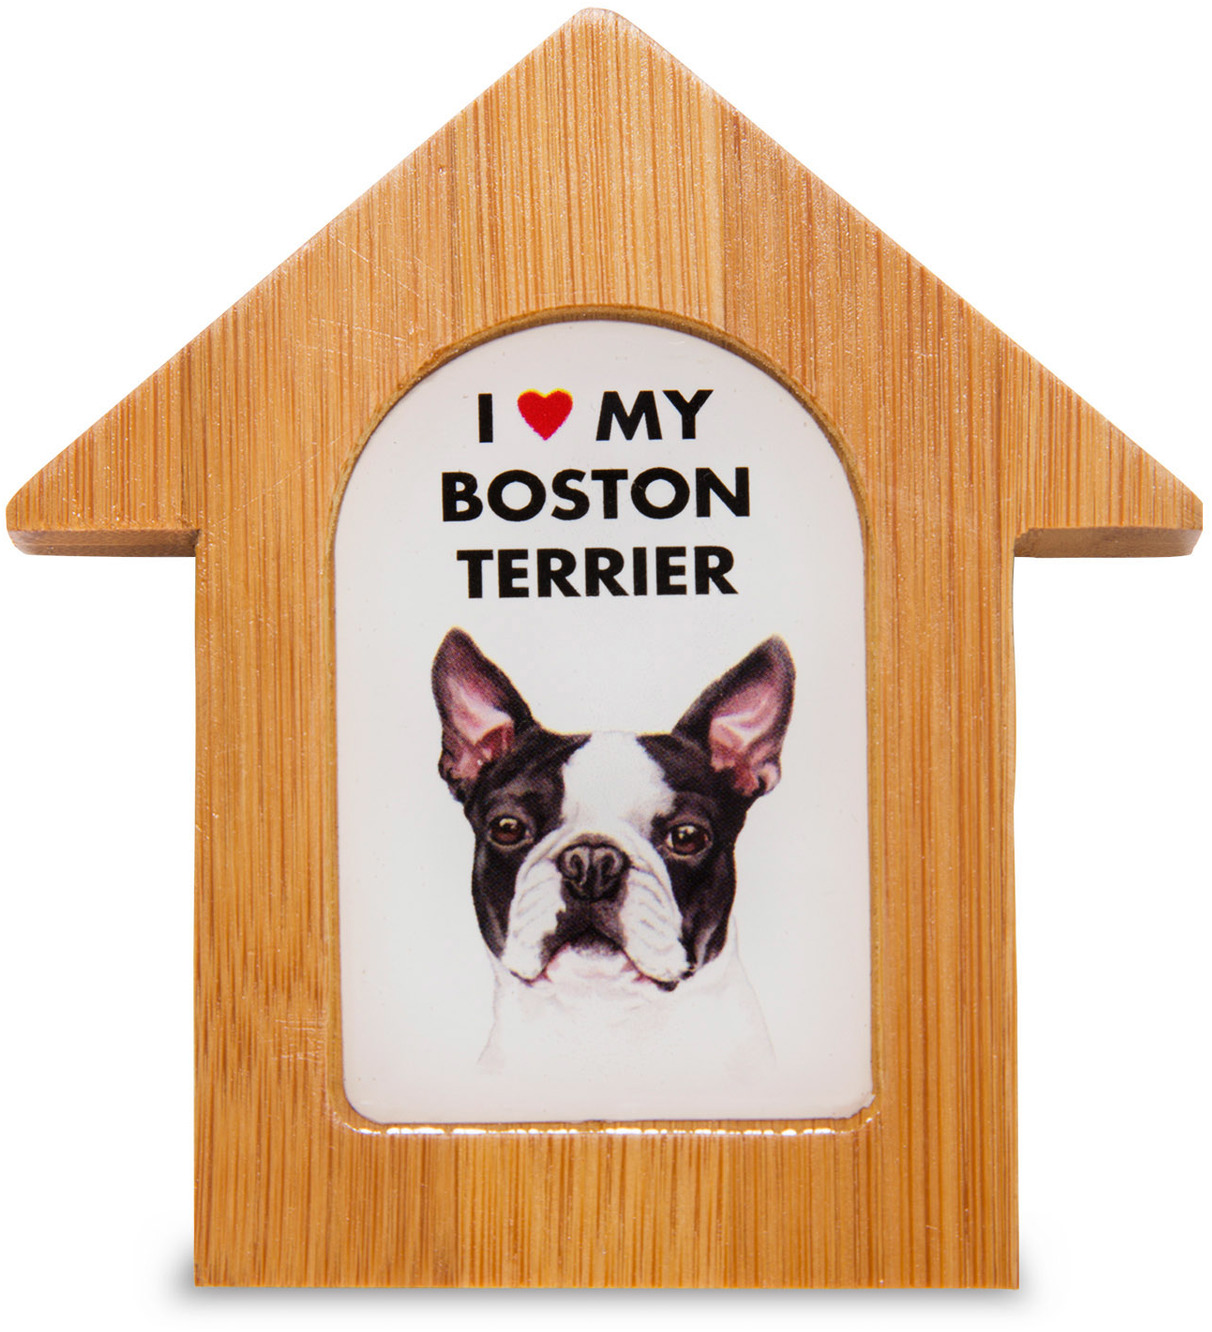 "Boston Terrier by Waggy Dogz - Boston Terrier - 3.5"" Self-Standing Magnet"